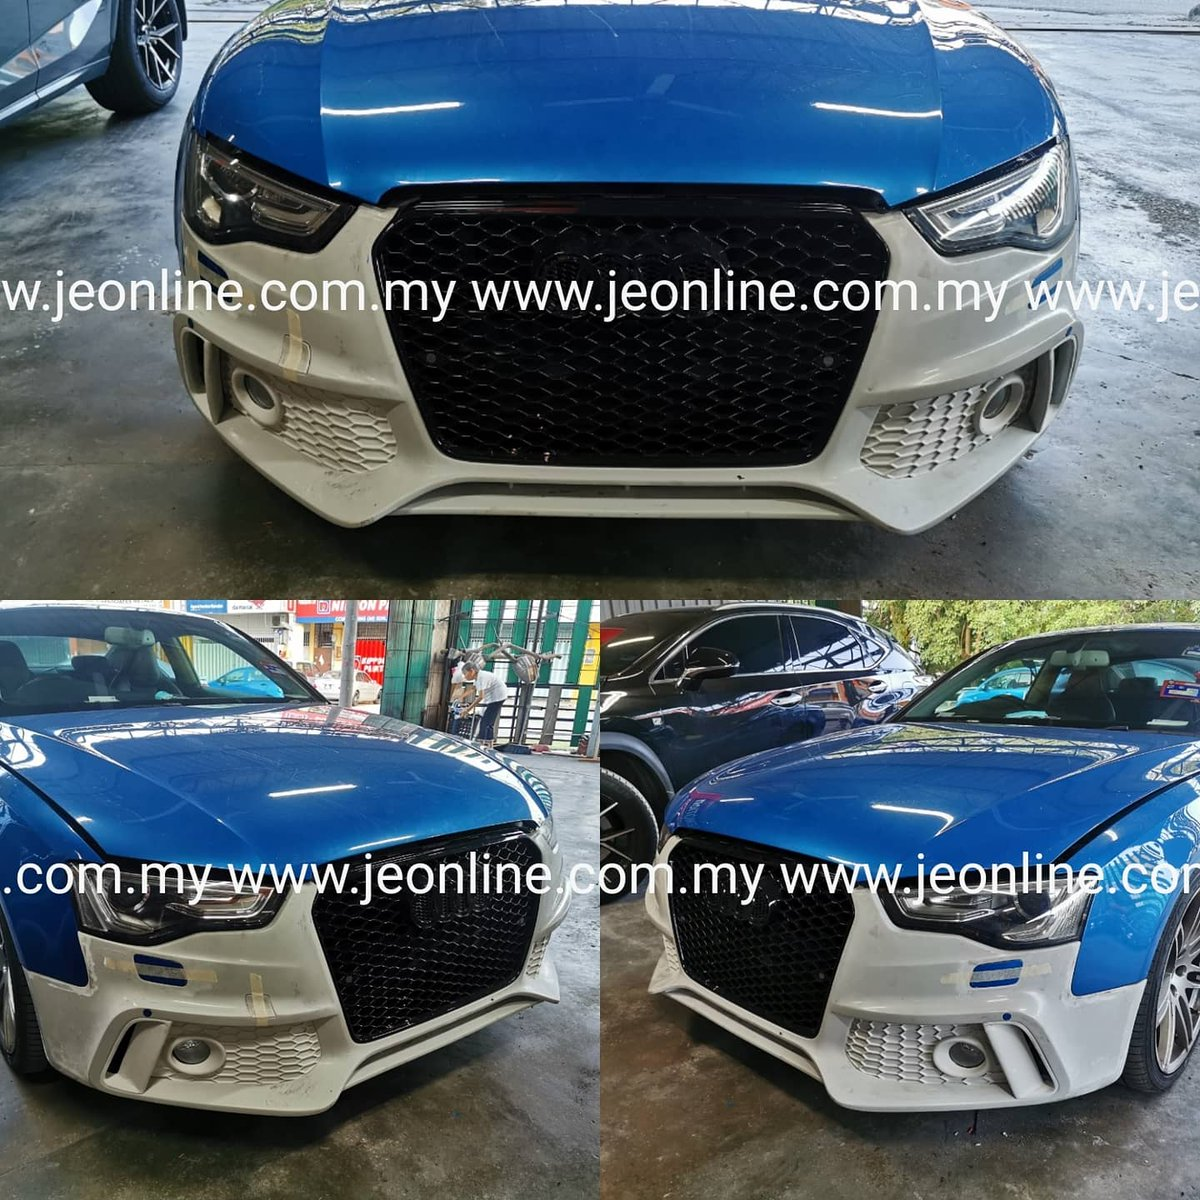 AUDI A5 2008 CONVERT TO 2012 FACELIFT BODY PARTS AND BODY KIT #simonchen #jemotiondesign #audi #audir8 #audir8v10 #audia5 #audia4 #audimalaysia #audirs5 #vellfire30 #vellfire #vellfire20 #alphard30 #alphard10 #alphard20 #20alphard  http://www.jeonline.com.my http://www.j-emotion.compic.twitter.com/ZEIiootU7T